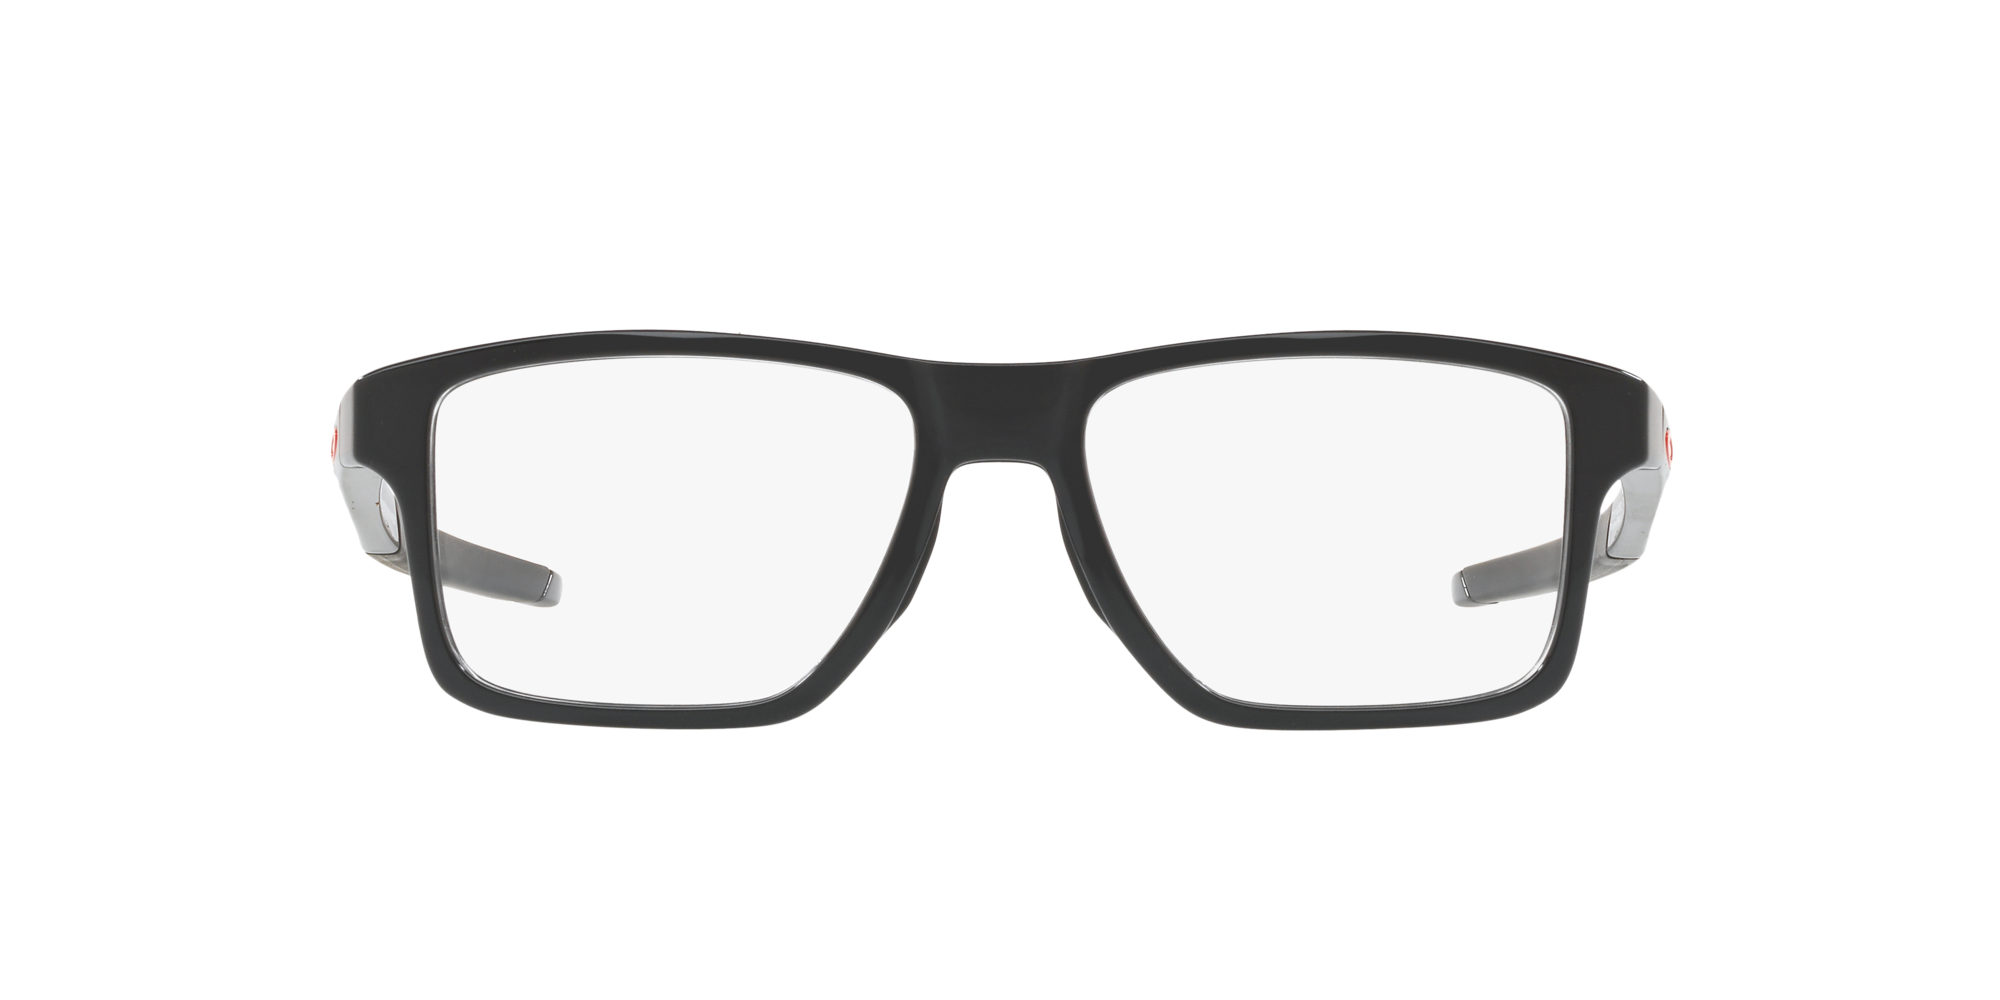 Image for OX8143 CHAMFER SQUARED from LensCrafters | Glasses, Prescription Glasses Online, Eyewear